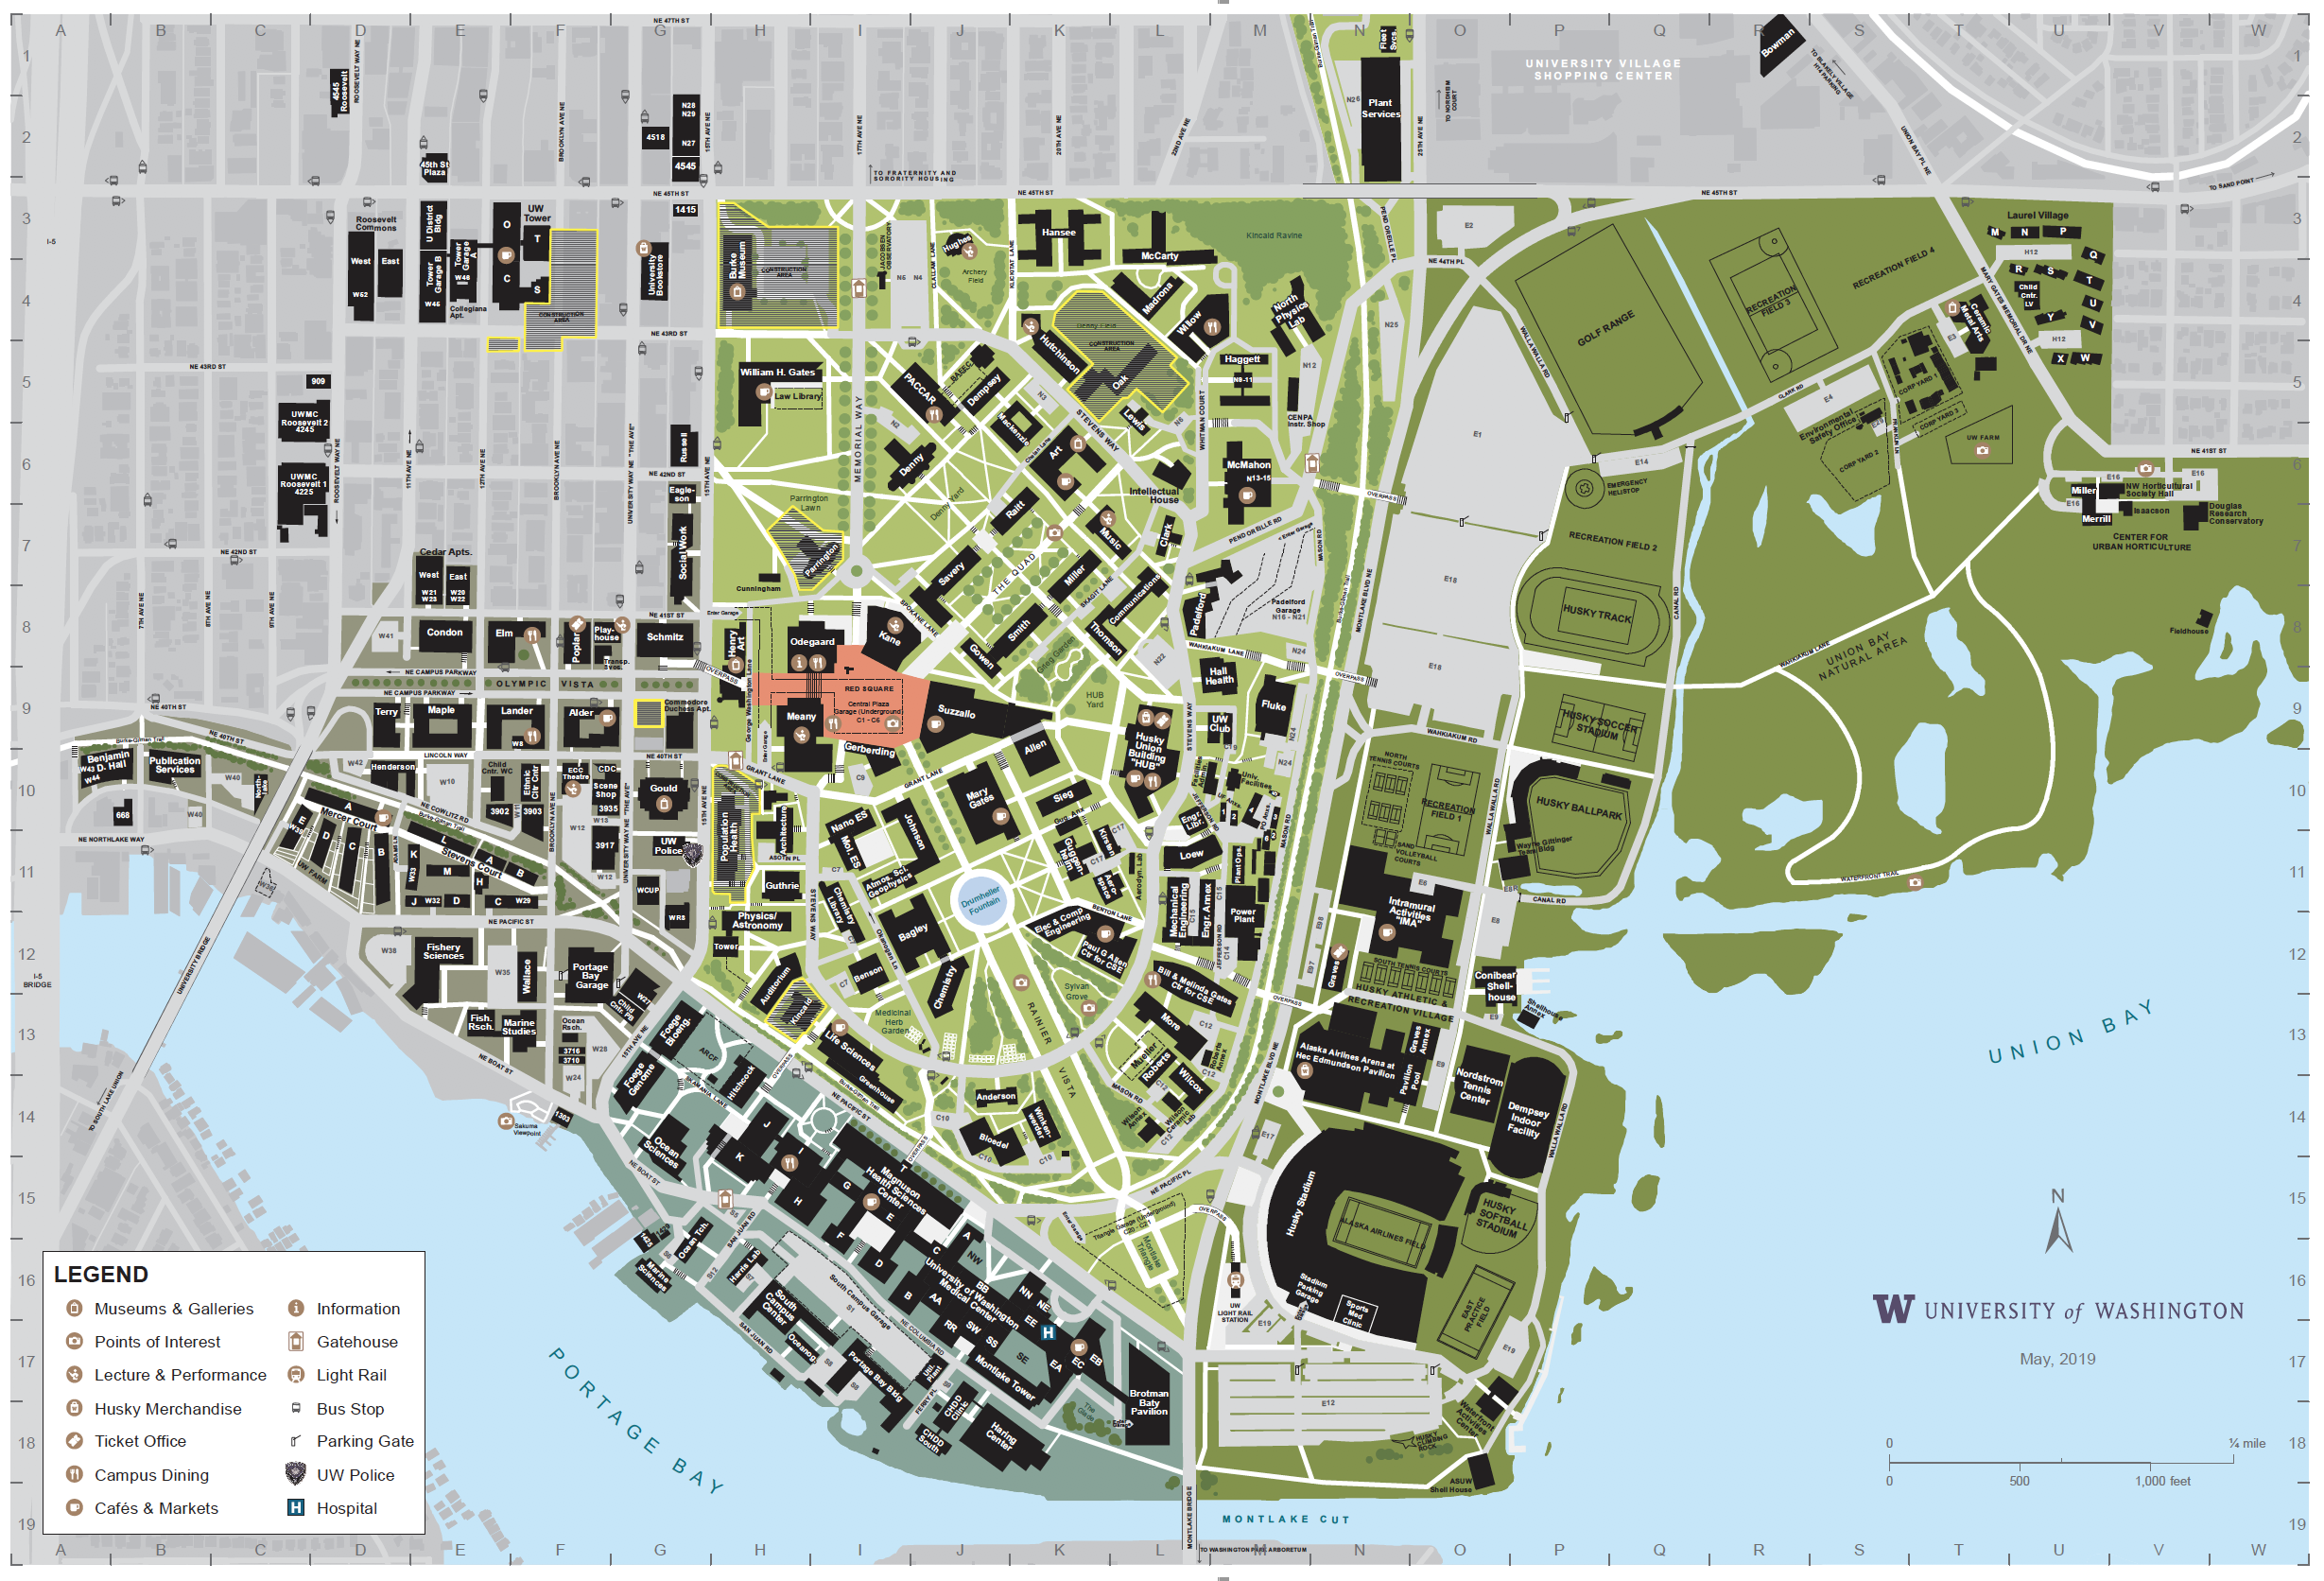 university washington campus map Campus Map University Of Washington Online Visitor S Guide